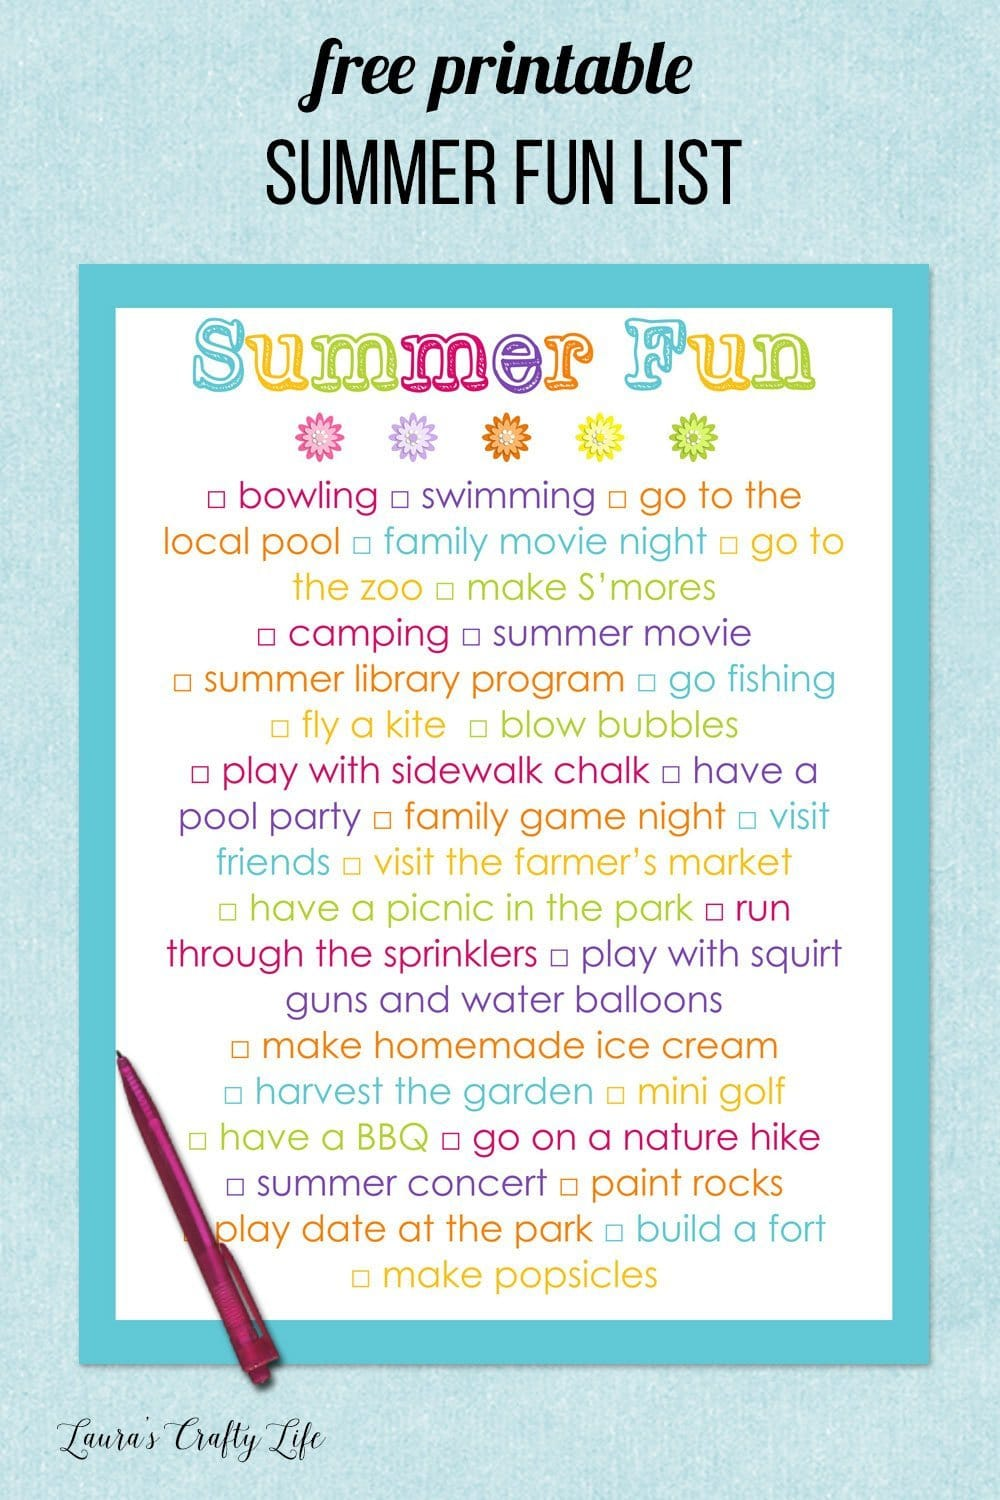 free printable summer fun list